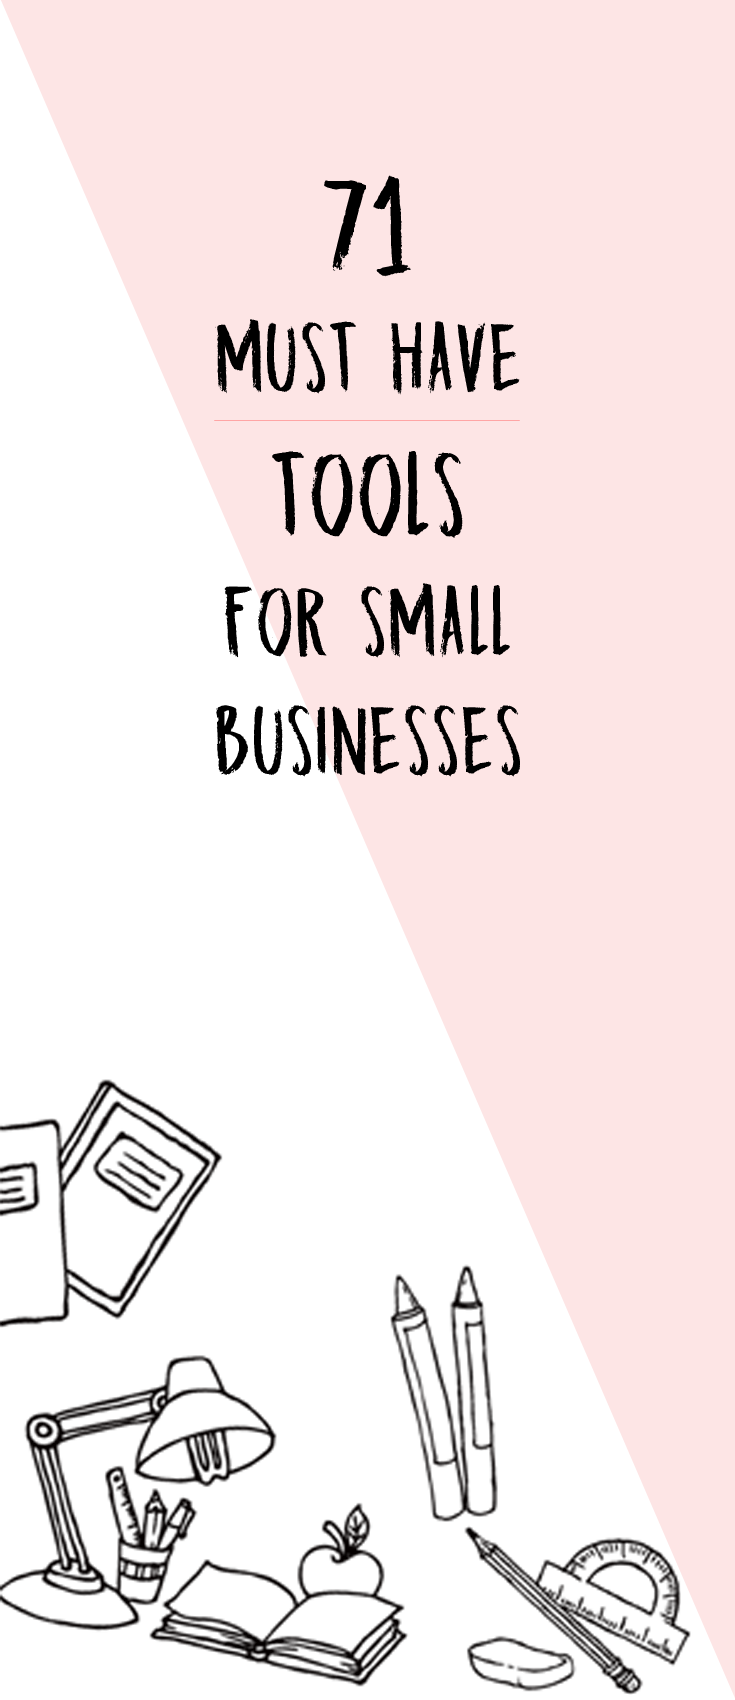 71 MustHave Tools for Small Businesses The Exact Business Tools I Used To Grow My Business A list of website marketing time management social media and financial tools yo...